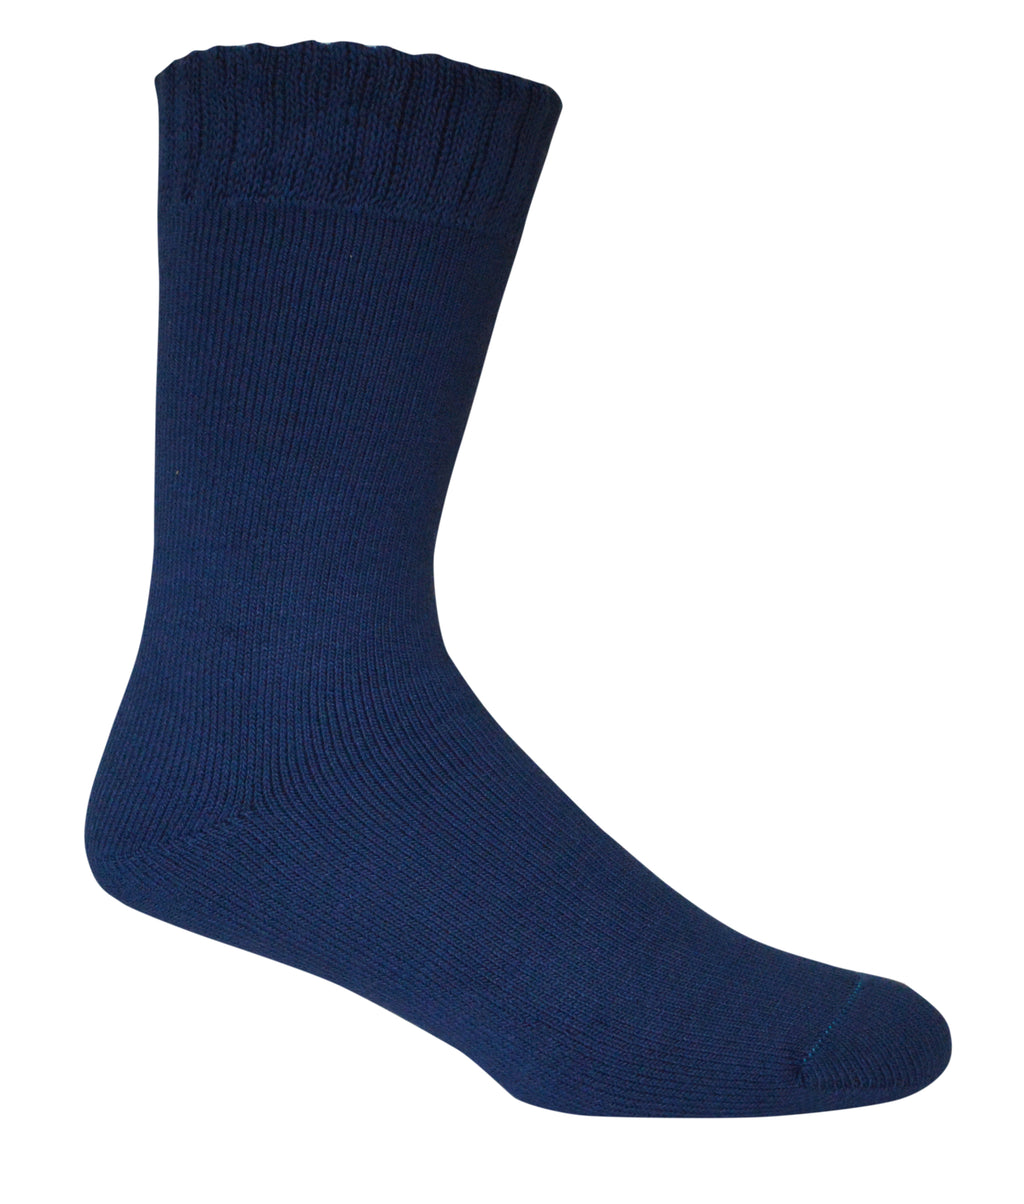 BT | Mens | Socks | Bamboo | Extra Thick | Blue